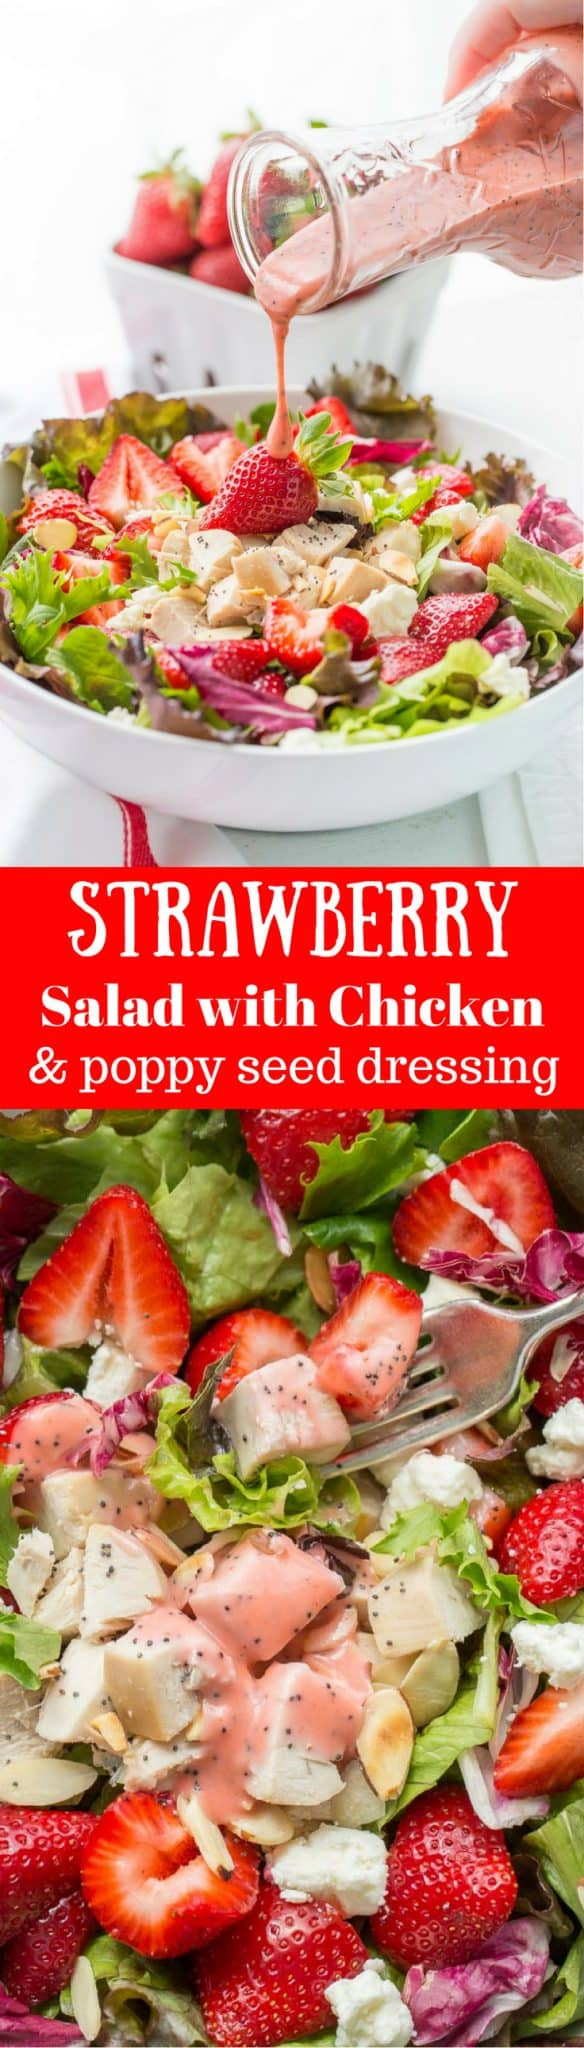 Simple and light, and deliciously refreshing ~ Strawberry Salad with Chicken and Poppy Seed Dressing is a great main course salad with an amazing combination of flavors. From the tender chunks of chicken and the creamy bite of feta cheese, to the toasted sliced almonds and poppy seeds, every bite will delight your senses! www.savingdessert.com